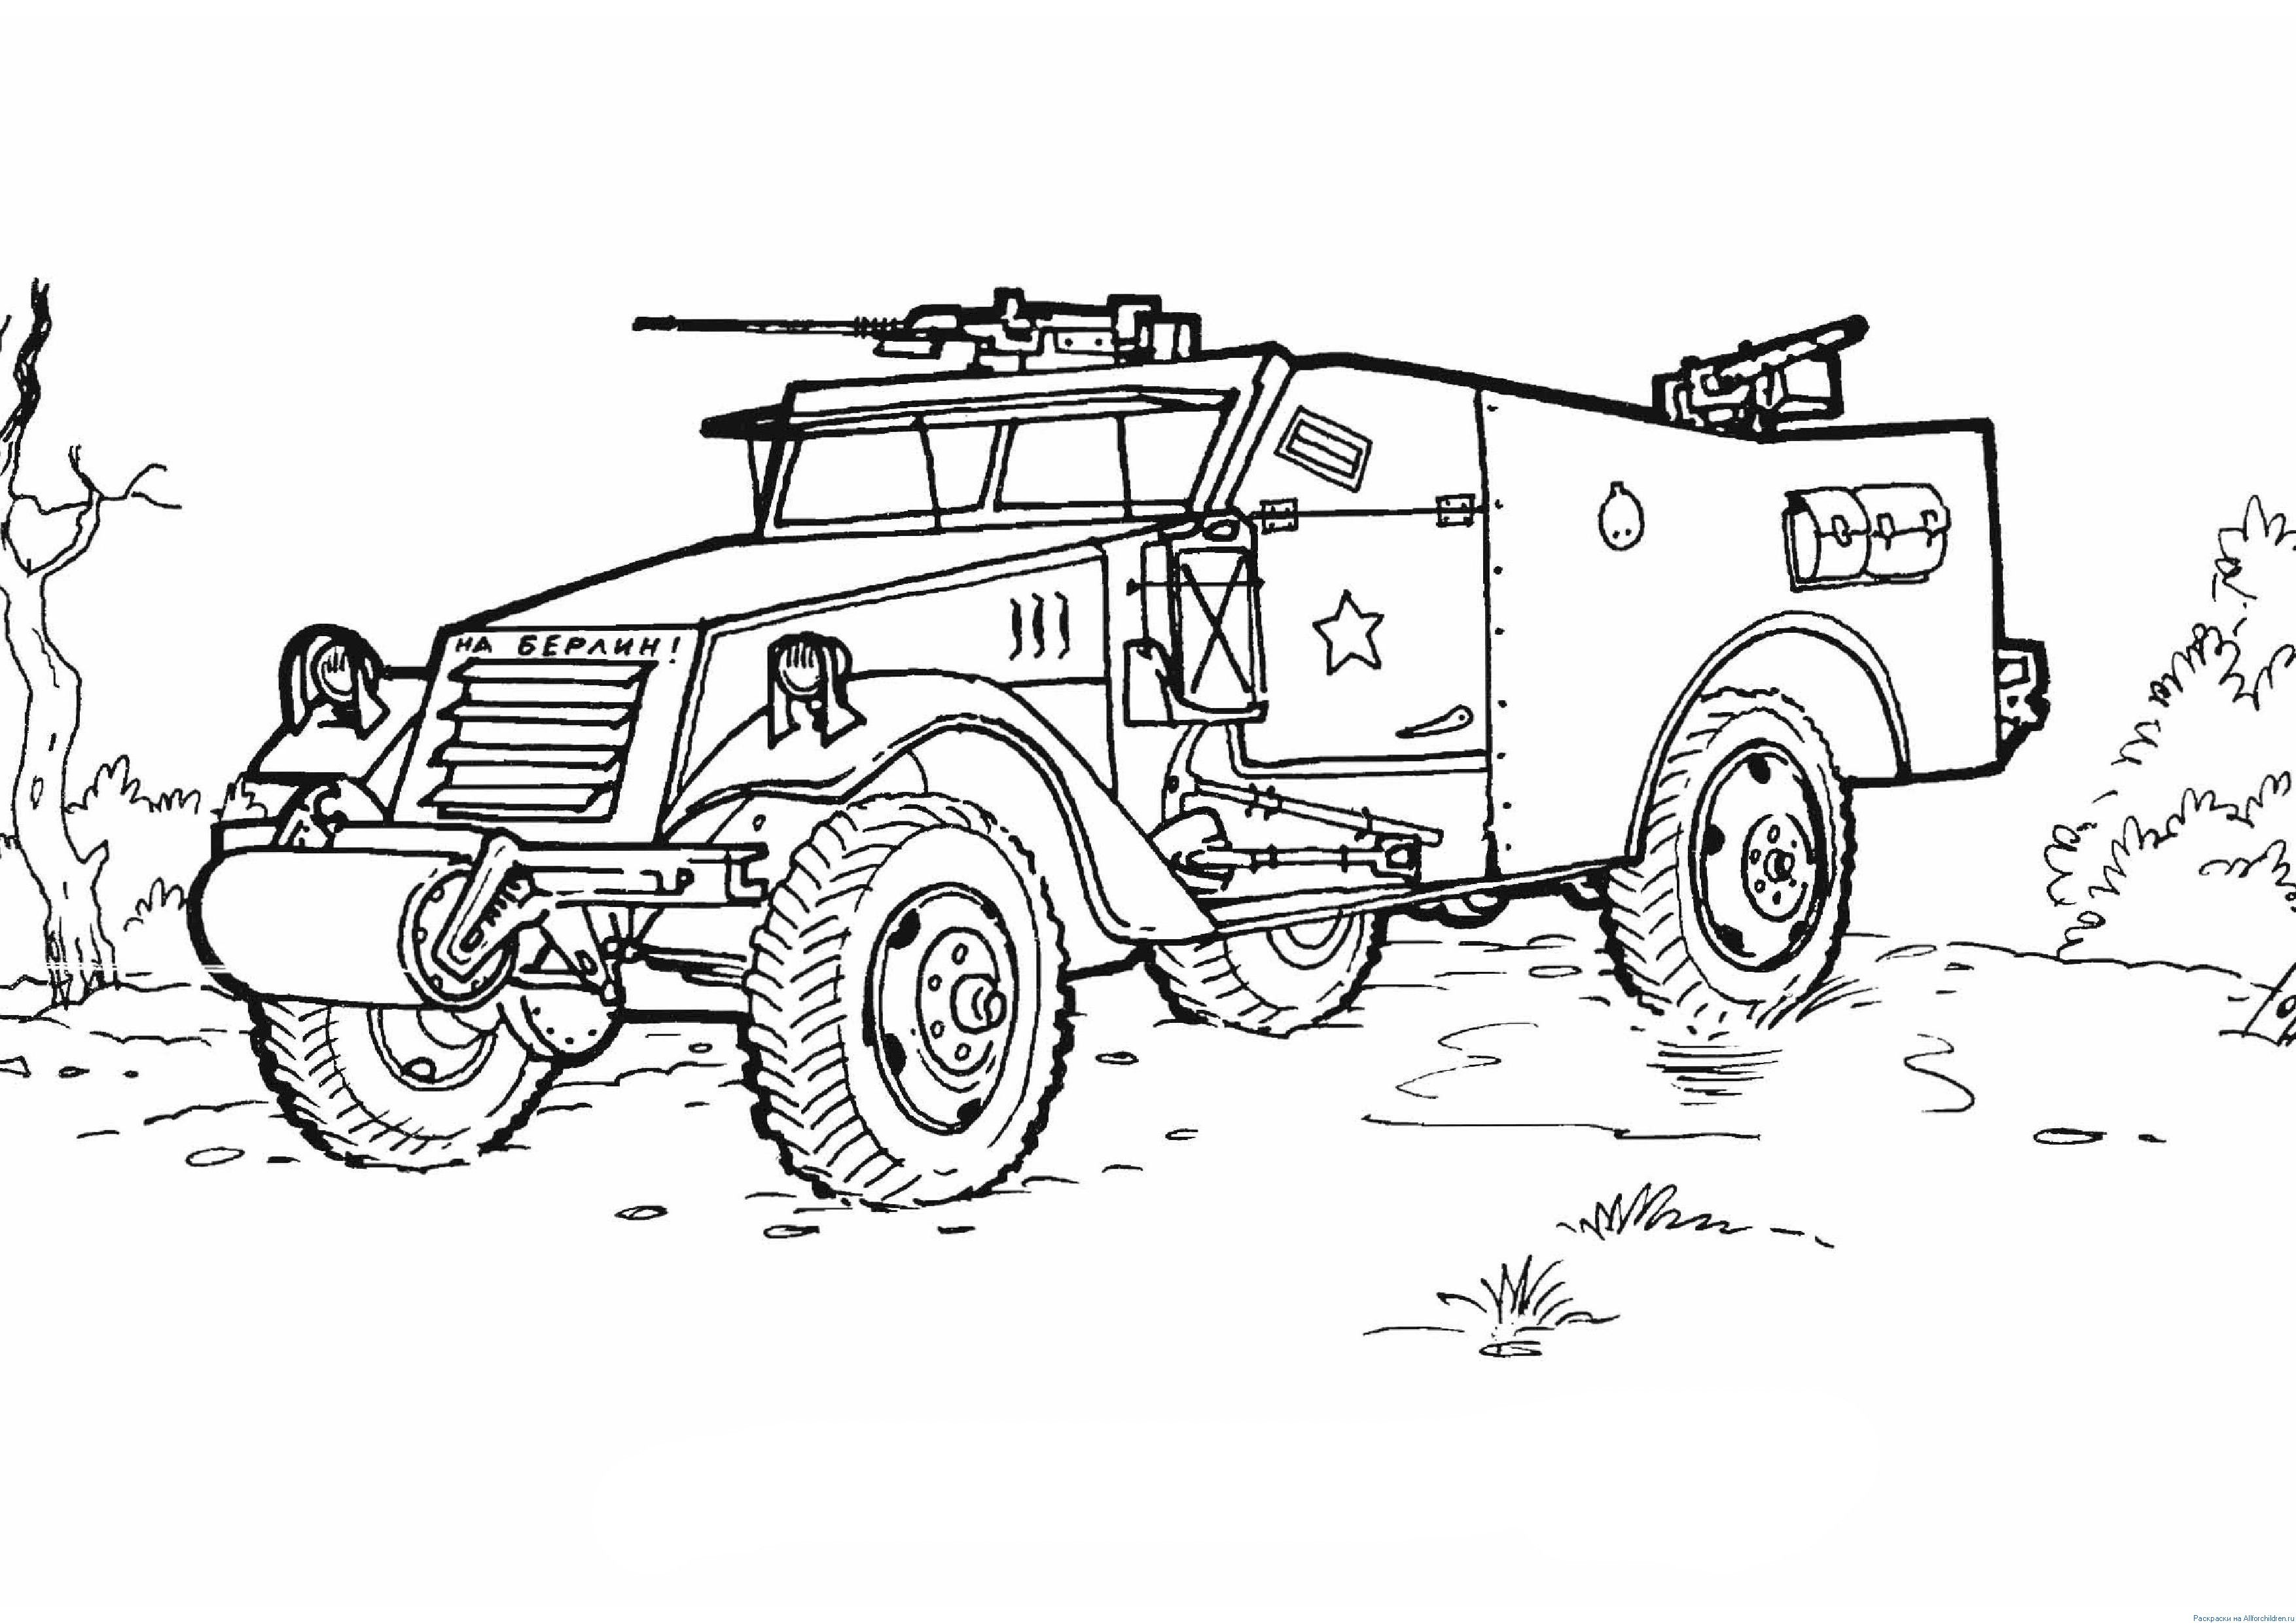 Army Vehicle Coloring Pages Truck Coloring Pages Coloring Pages Cars Coloring Pages